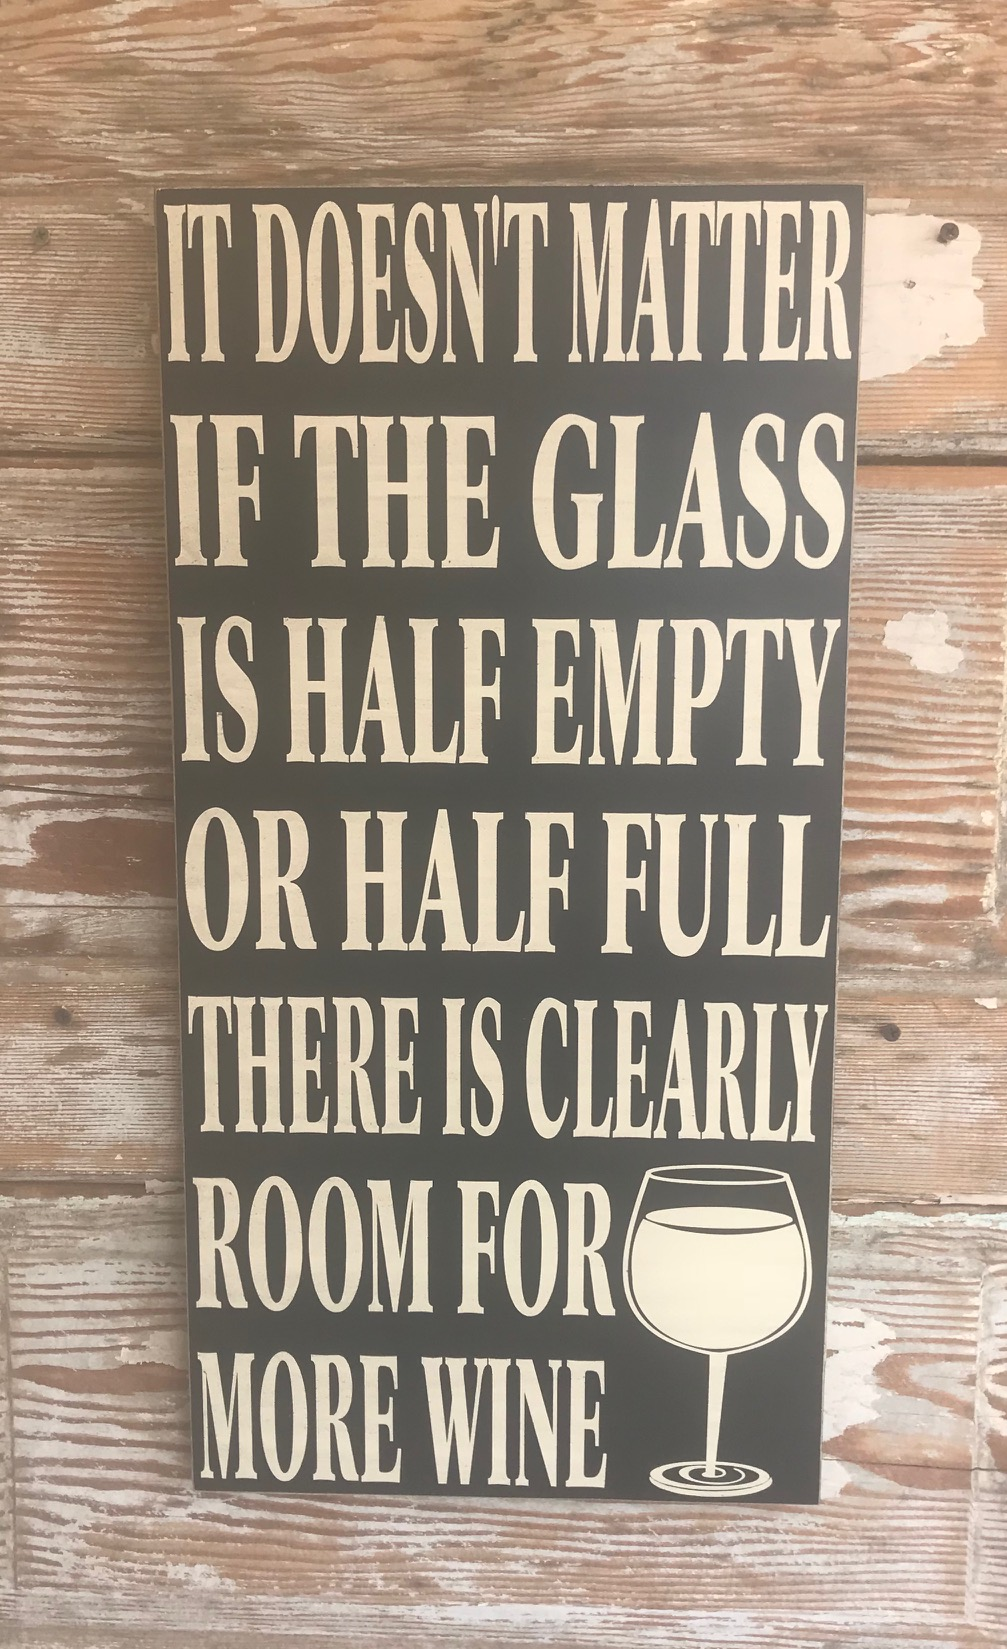 It Doesn't Matter If The Glass Is Half Empty Or Half Full.  There Is Clearly Room For More Wine.  Wood Sign